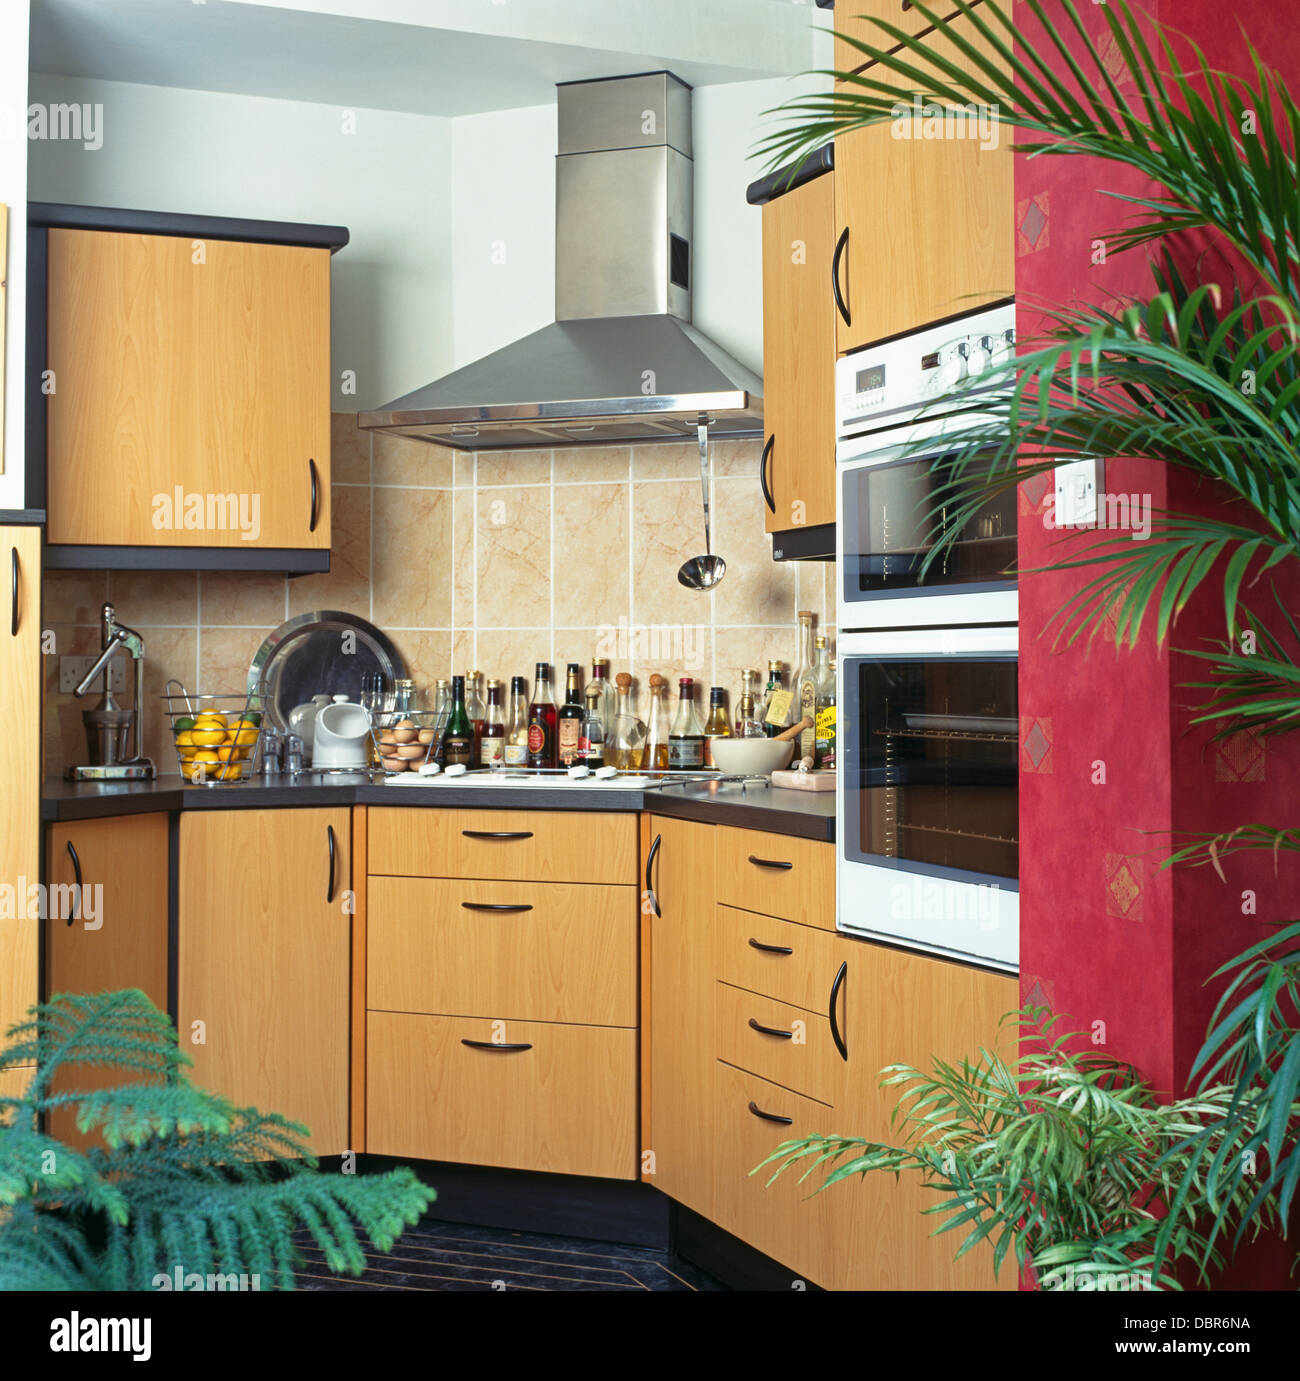 Double Oven Stockfotos & Double Oven Bilder - Alamy